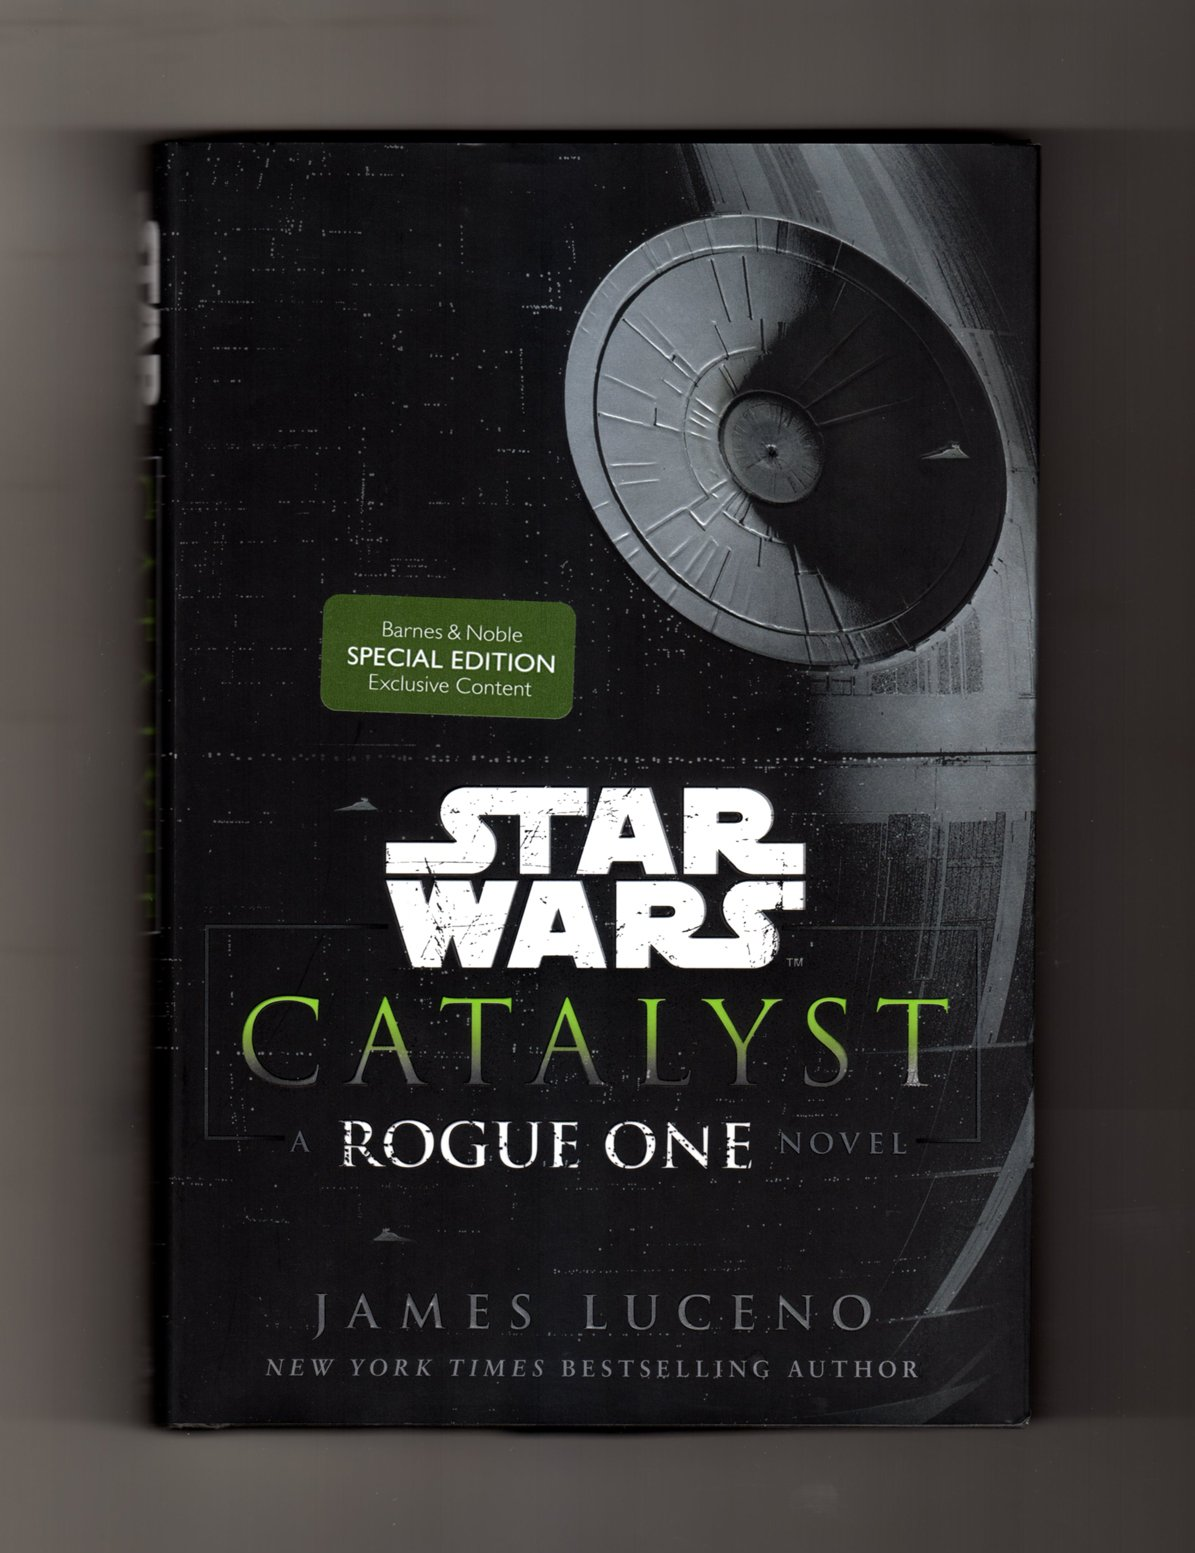 Download Star Wars Catalyst (Rogue One Novel). Special B&N Edition ISBN 9780425286906 with Exclusive Content (Two-Sided Death Star Poster). First Edition, First Printing ebook